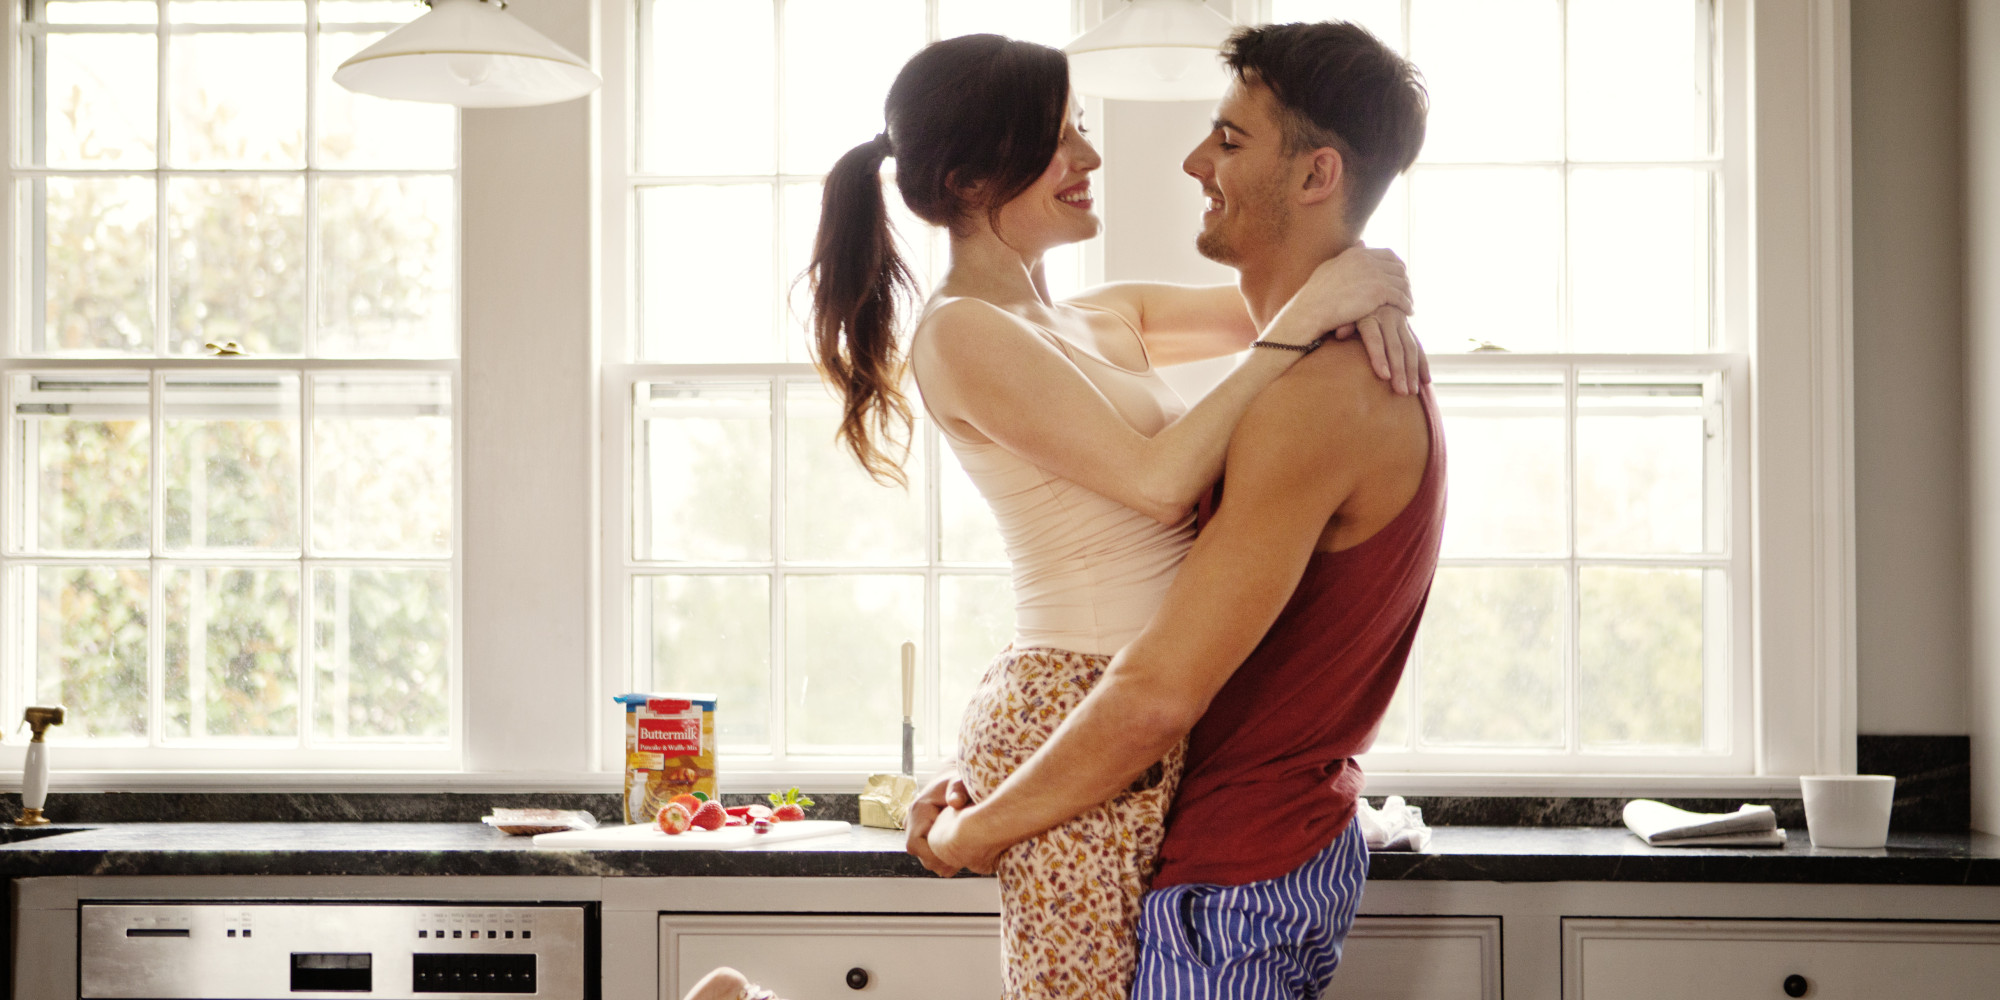 Couple flirting while making breakfast